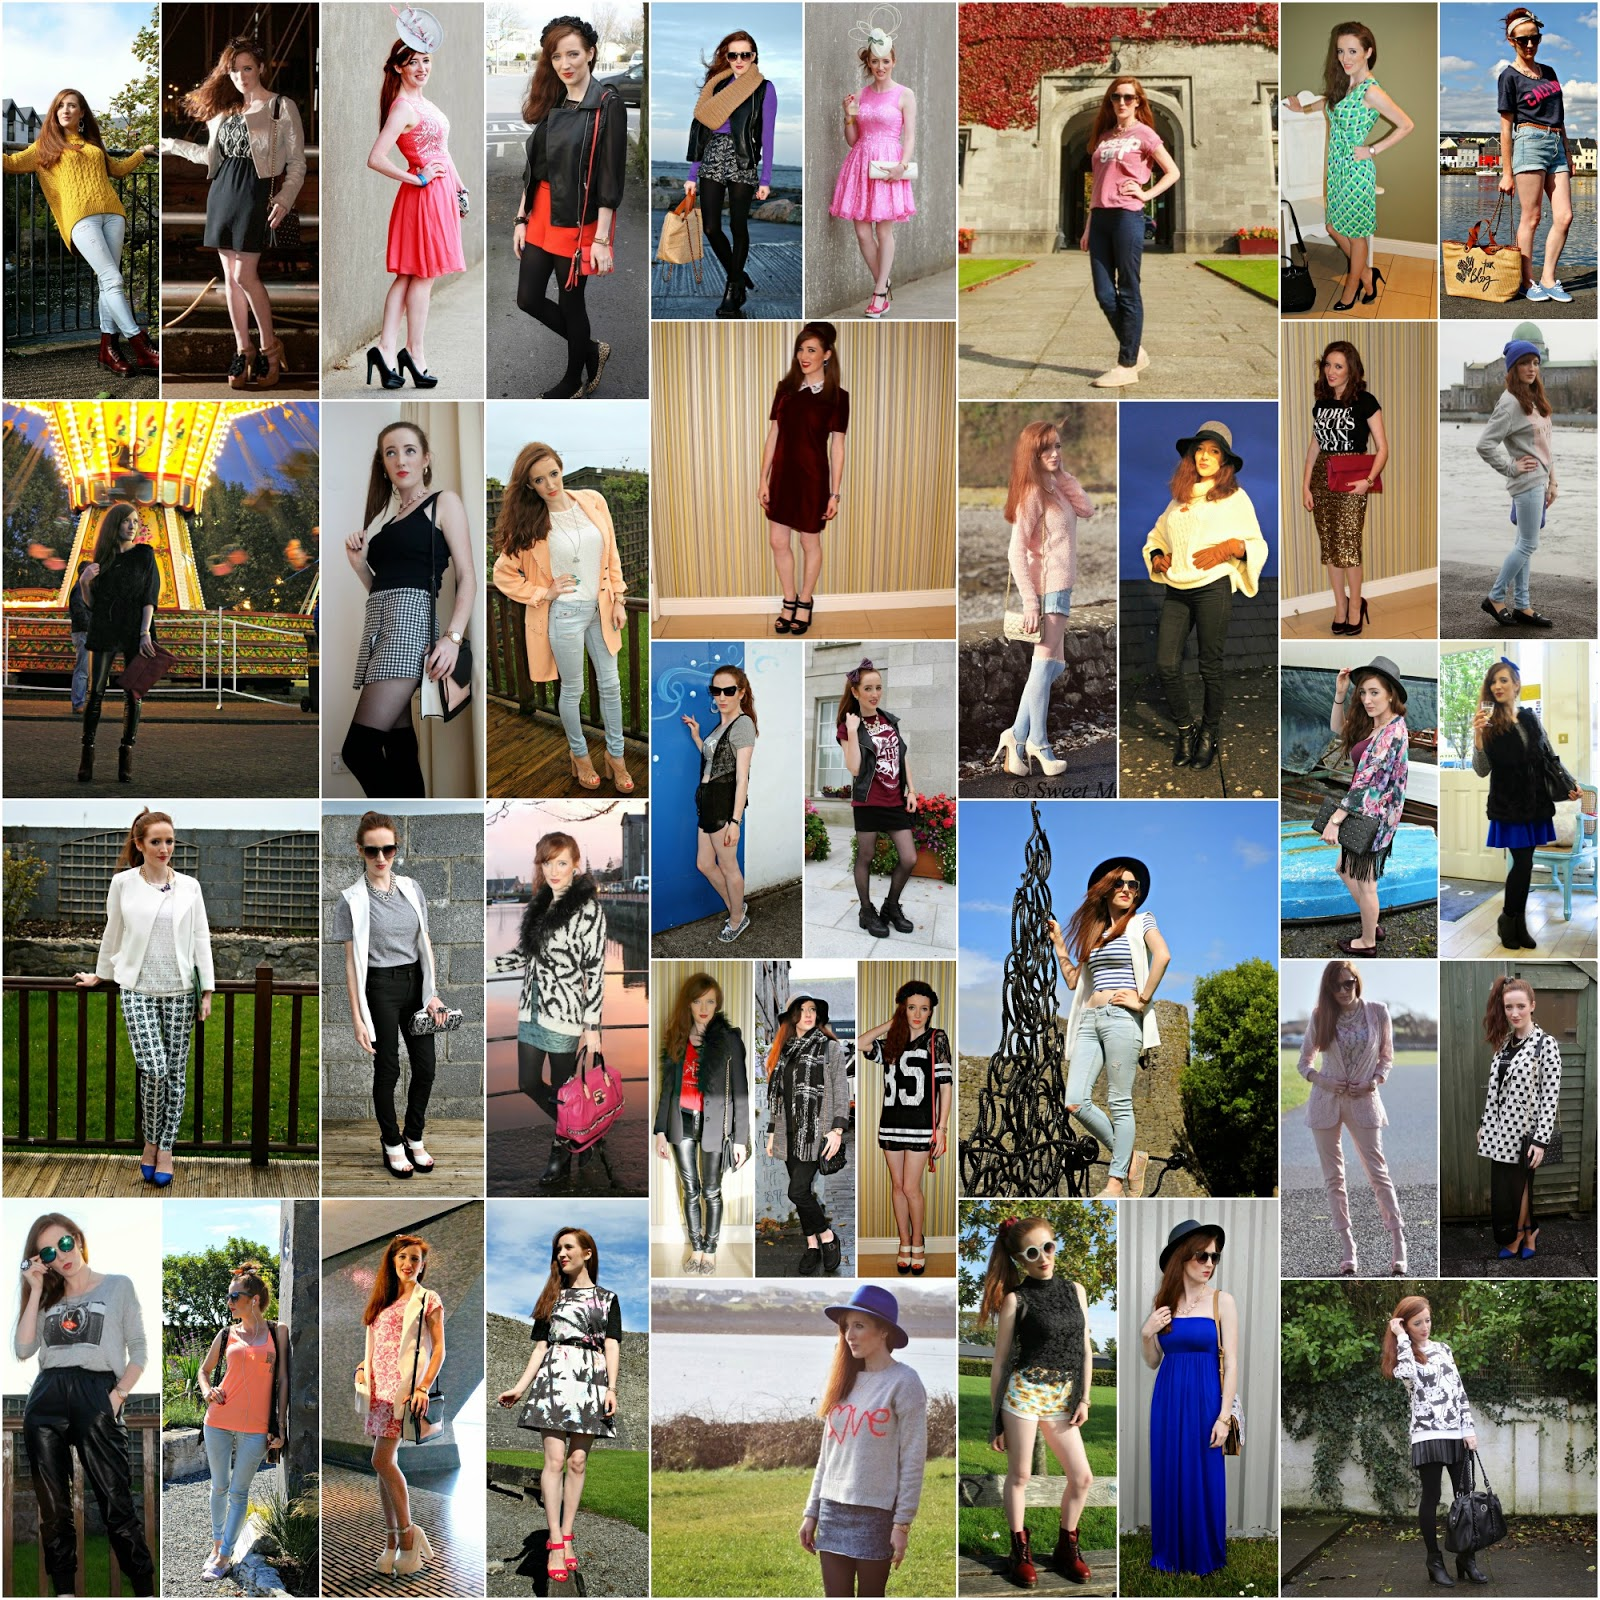 Bec boop 2014 outfits fashion